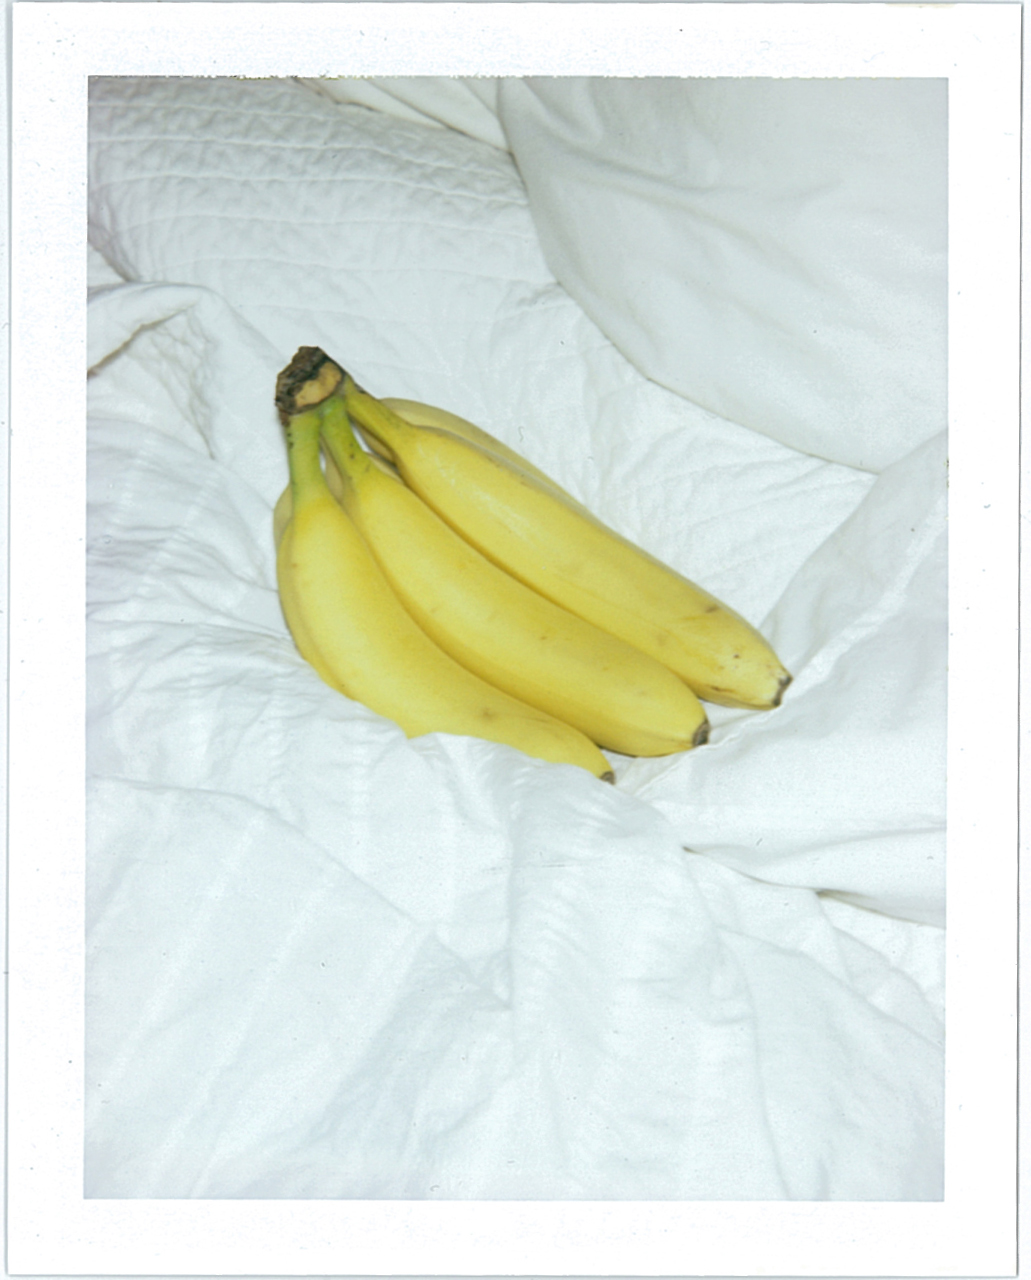 banana_bed_lo_op.jpg